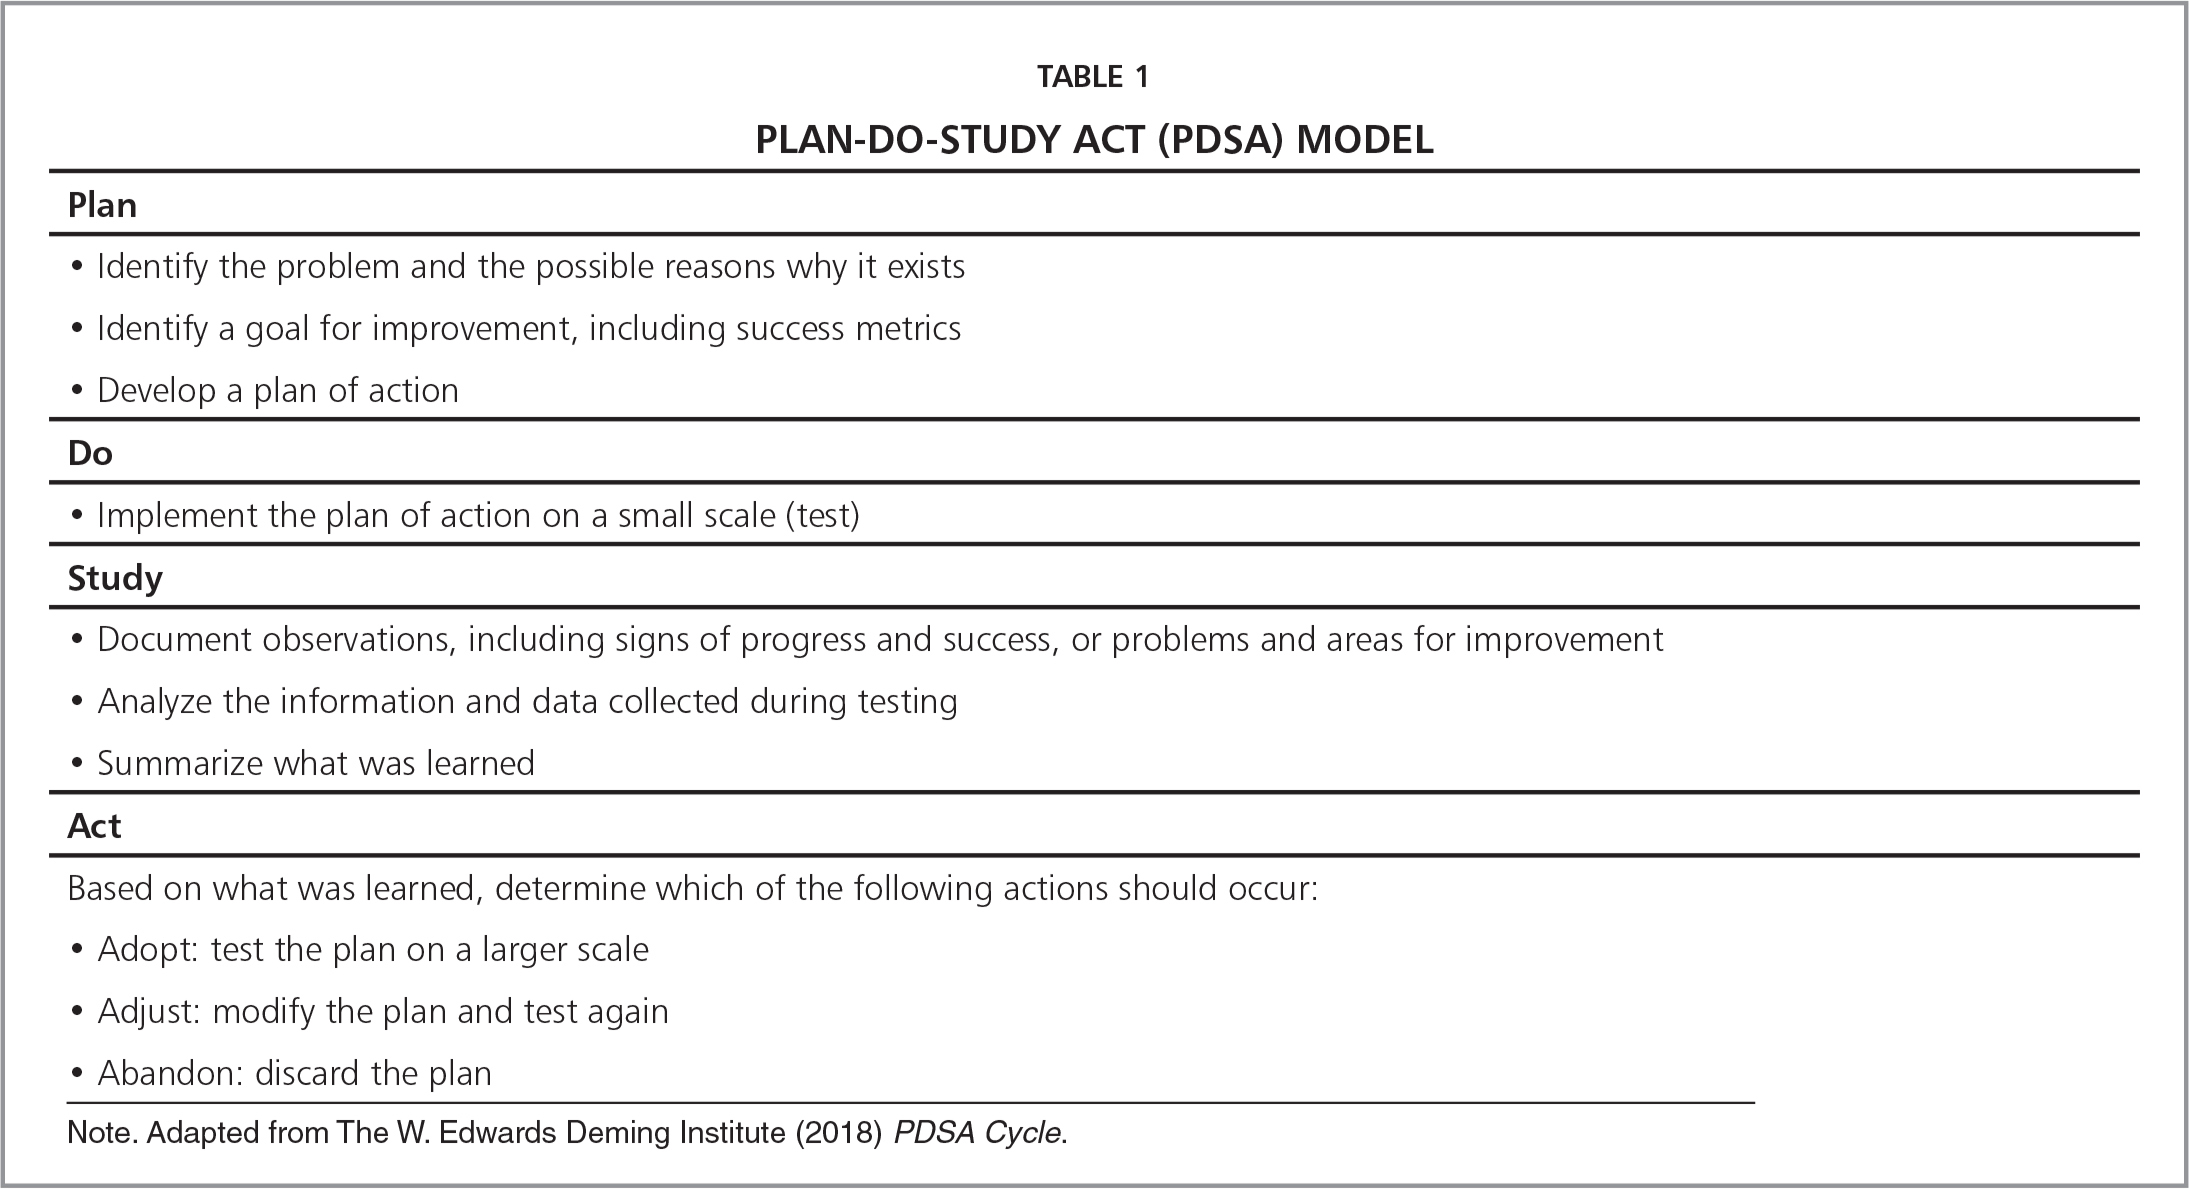 Plan-Do-Study Act (PDSA) Model